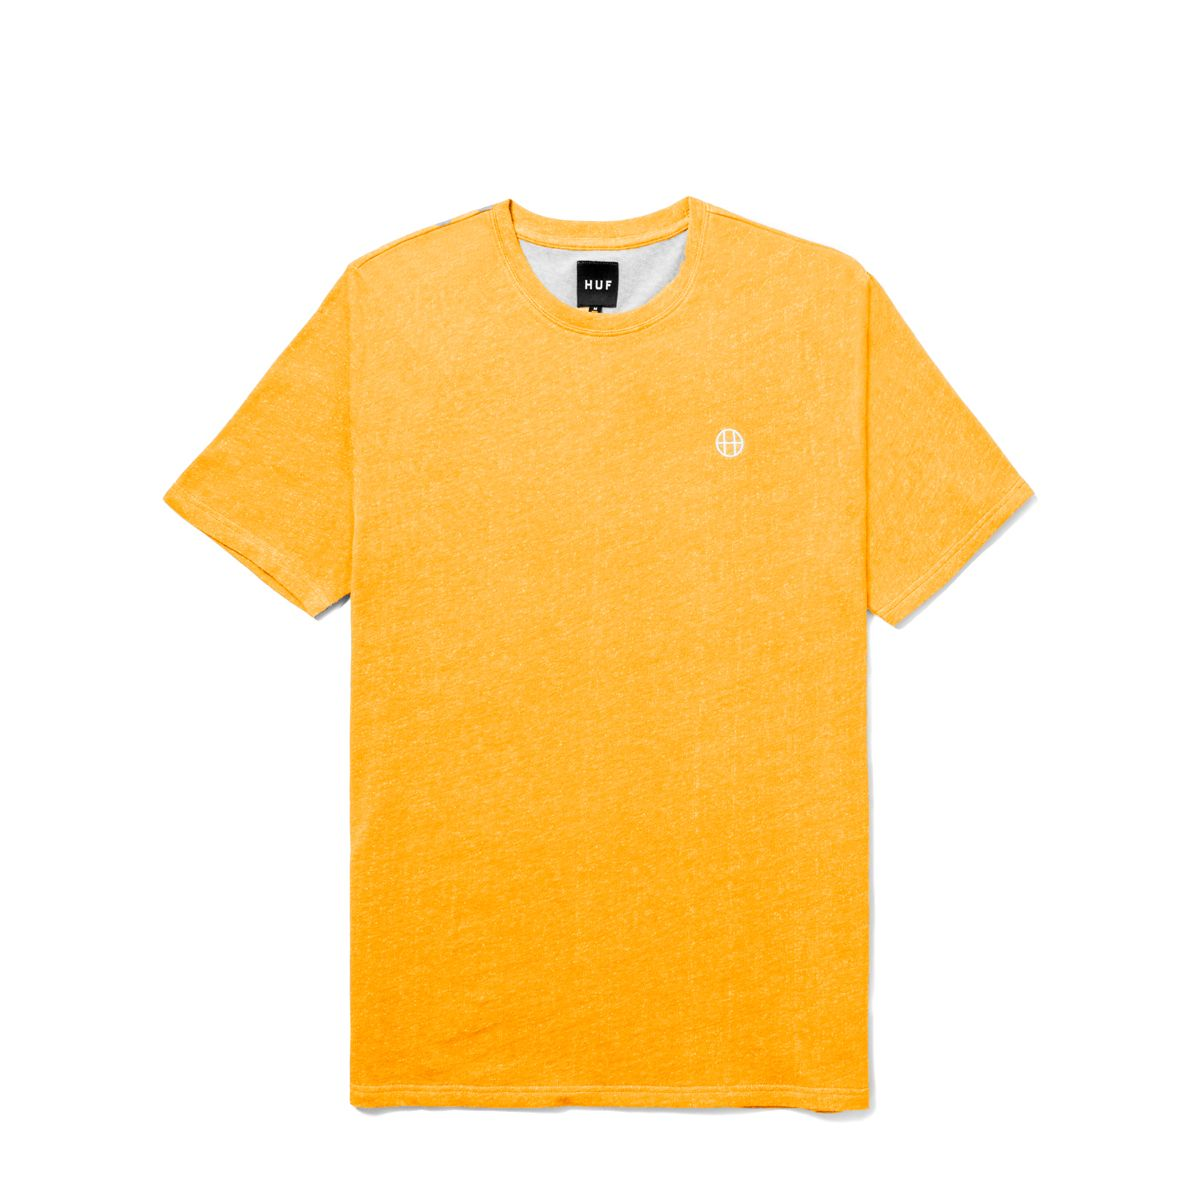 Футболка HUF Heather EMB Circle H tee mustard